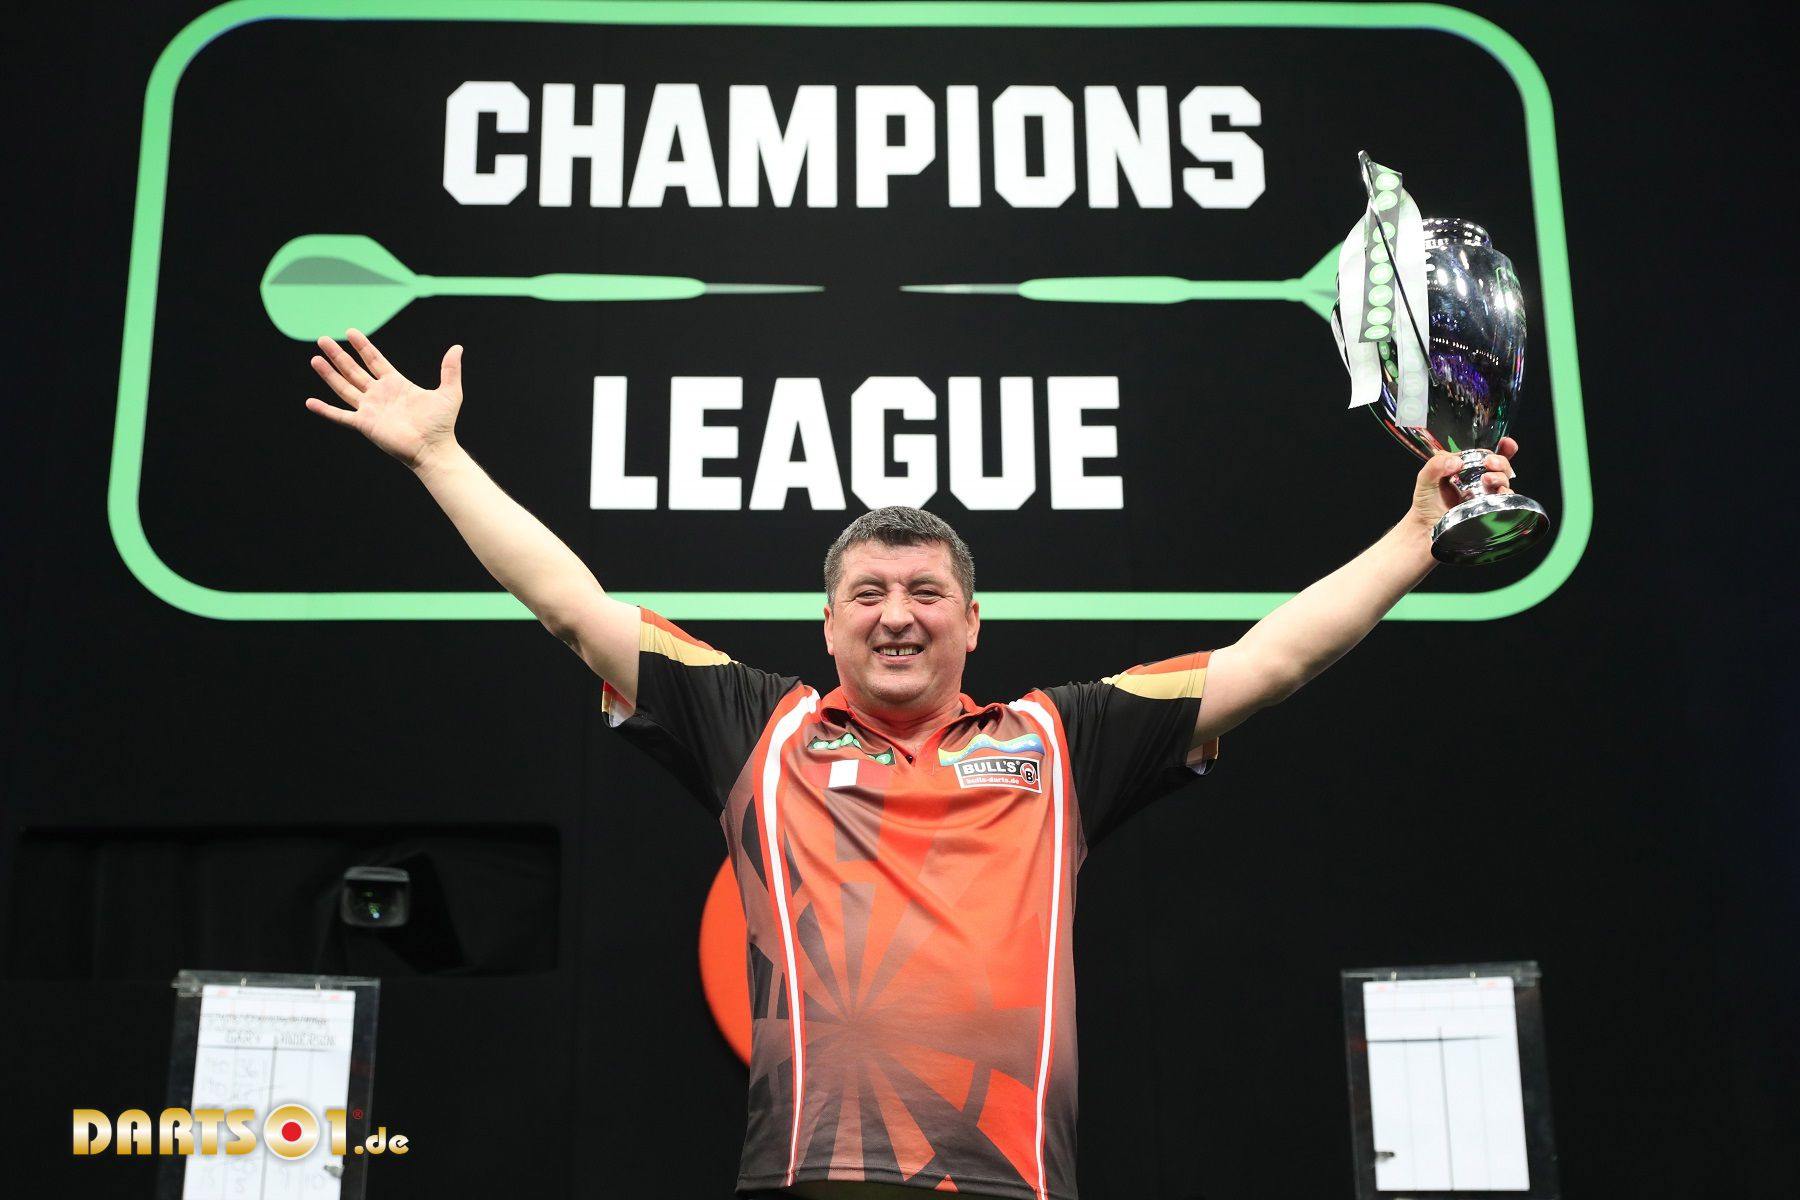 champions league of darts